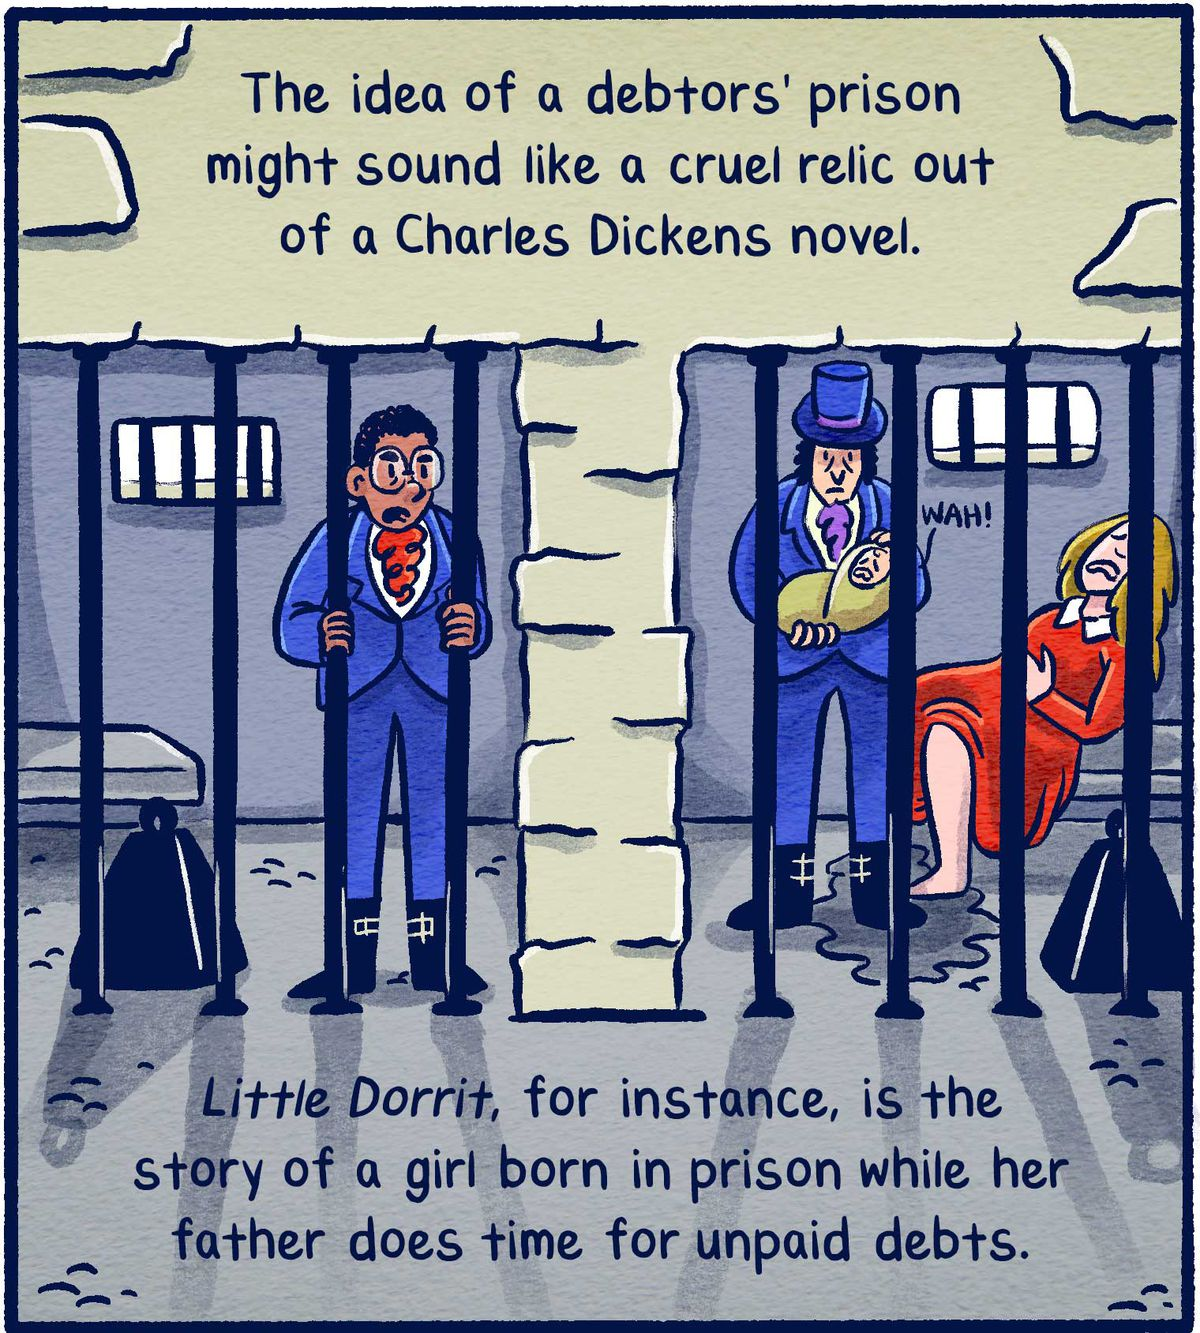 The idea of a debtors' prison might sound like a cruel relic out of a Charles Dickens novel. Little Dorrit, for instance, is the story of a girl born in prison while her father does time for unpaid debts.